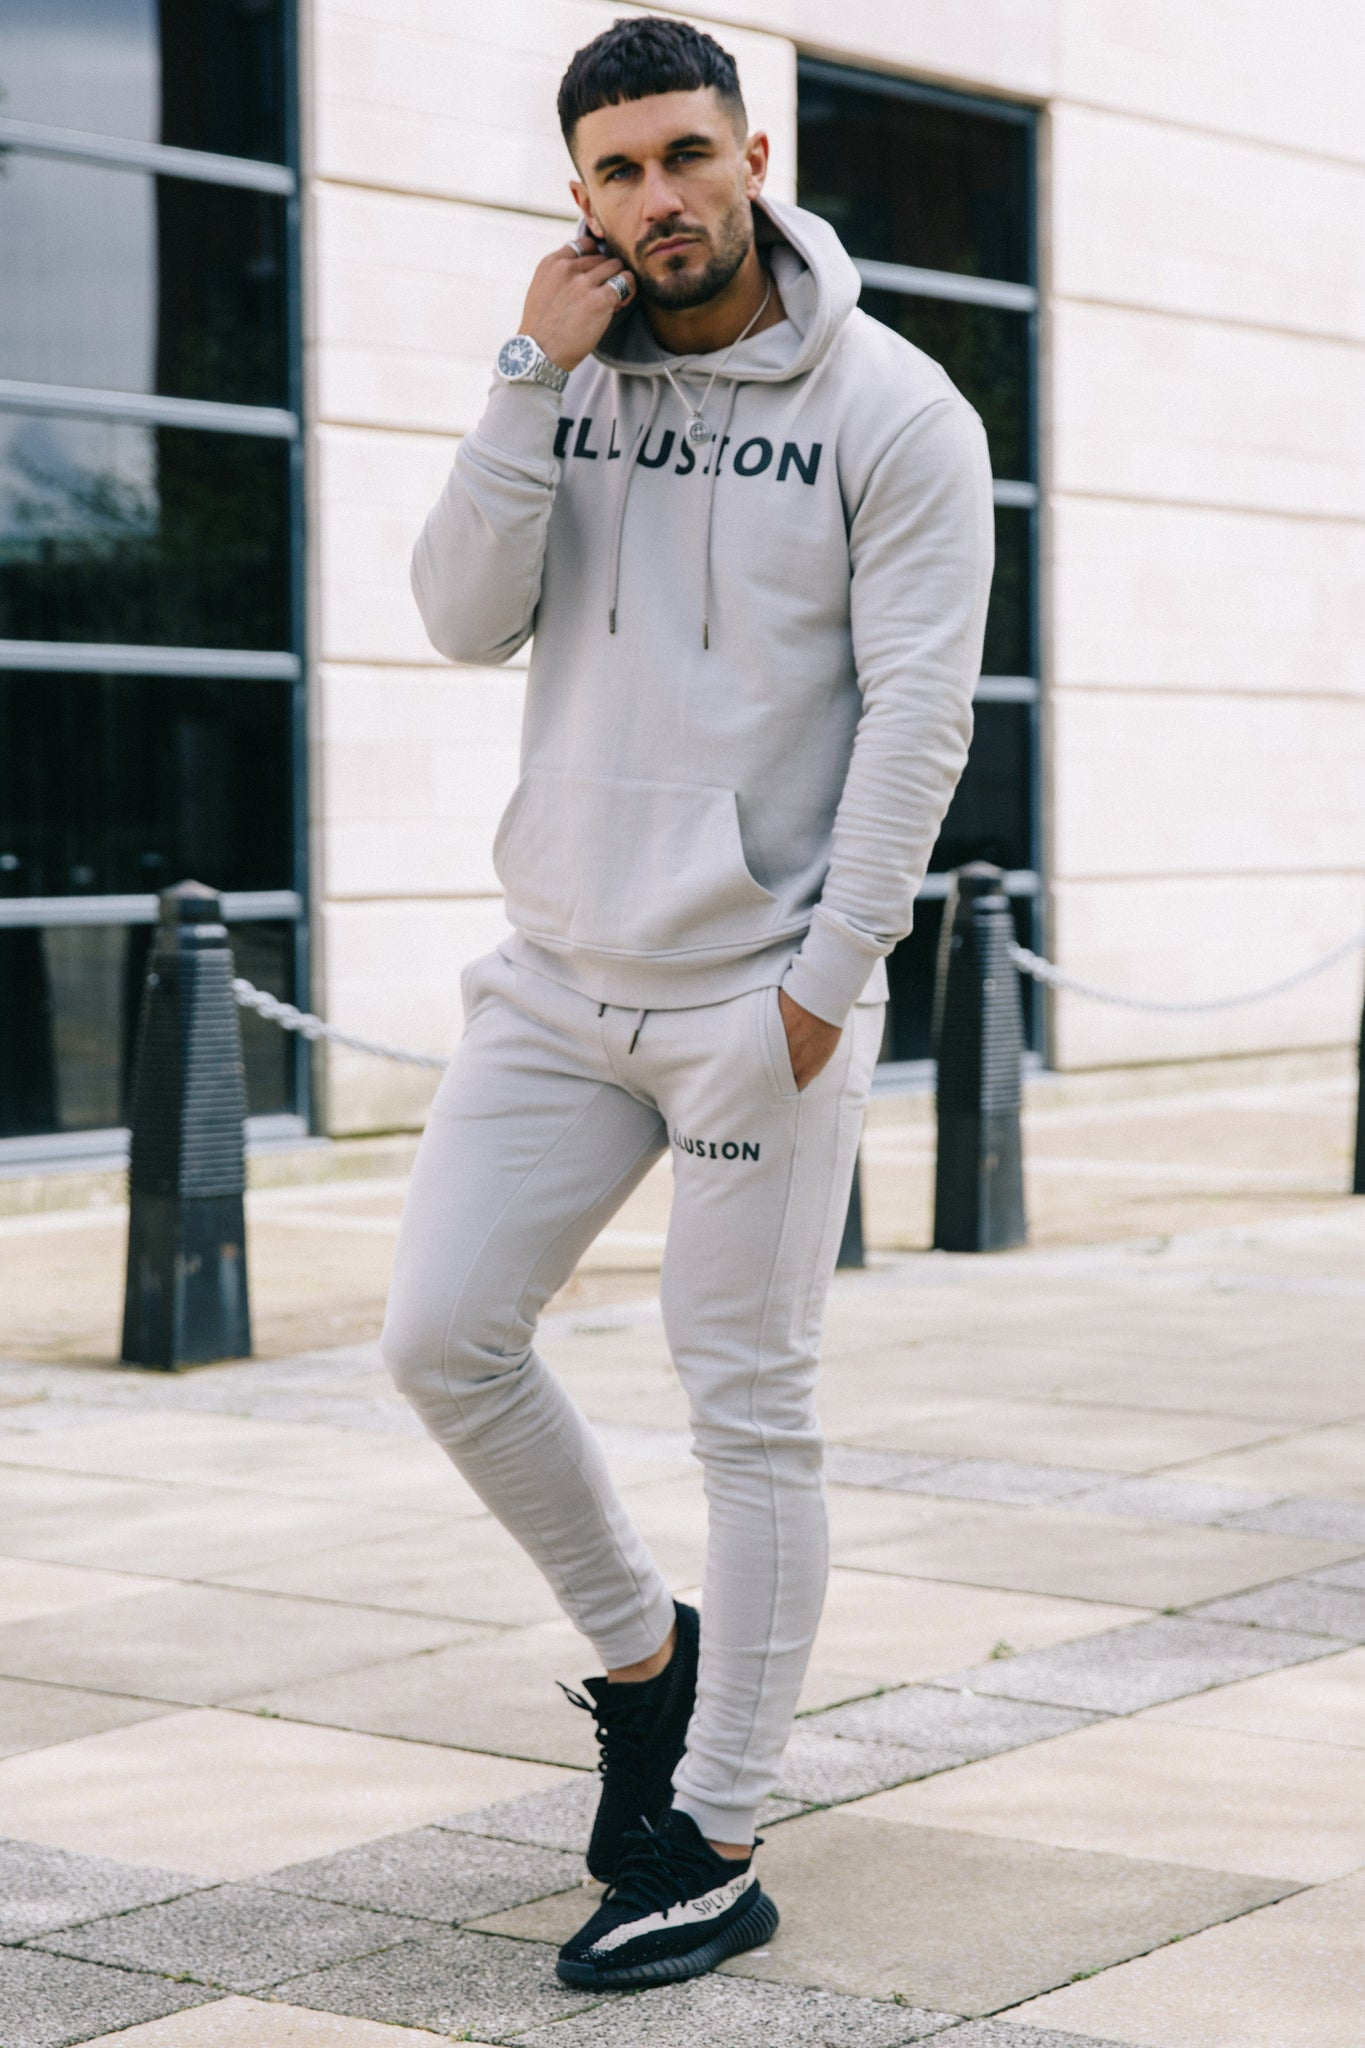 GREY HOODIE - Illusion Attire